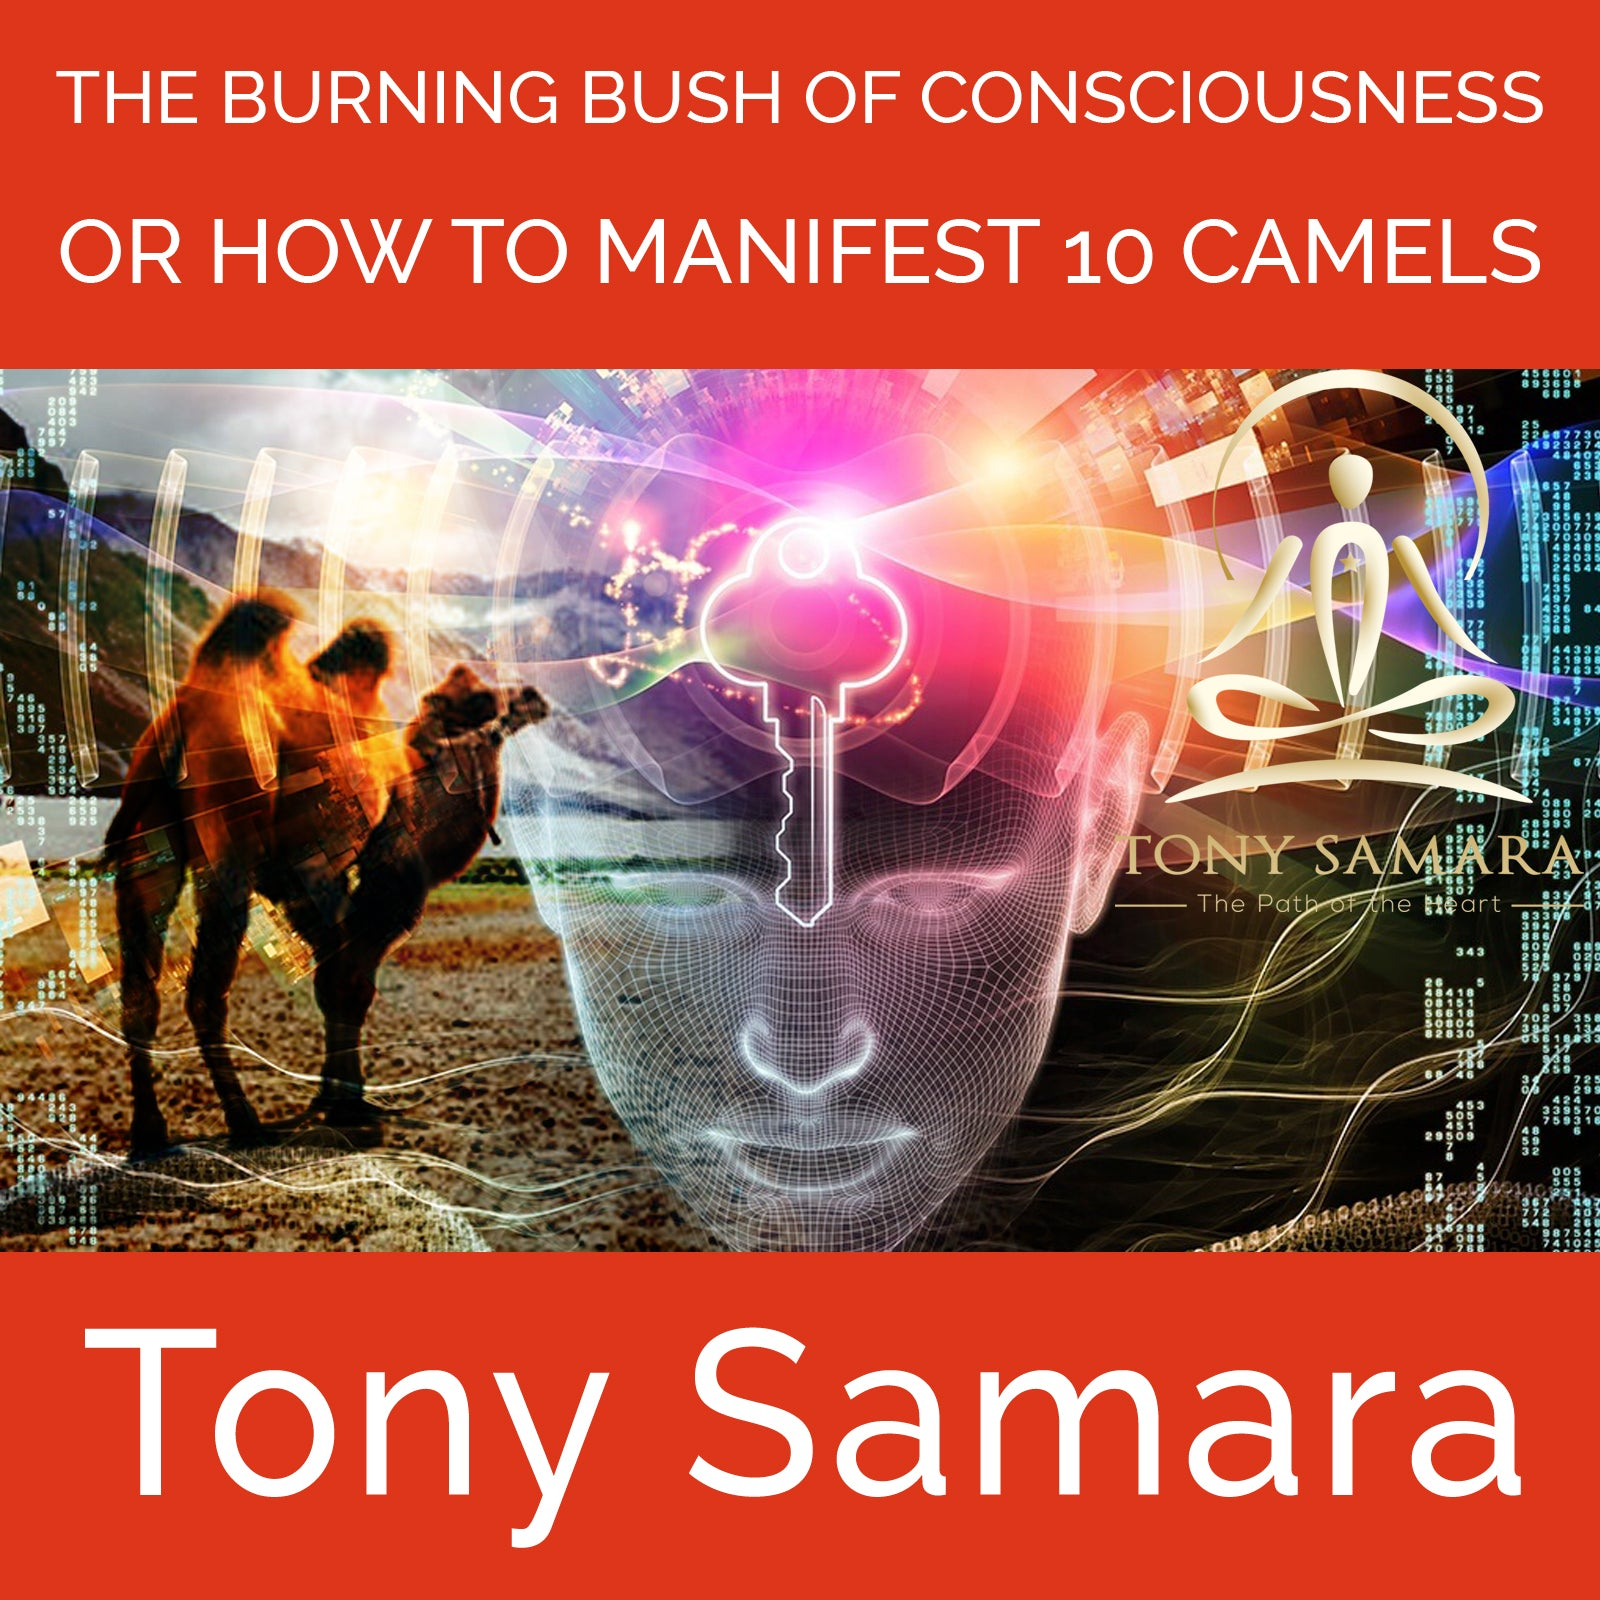 The Burning Bush of Consciousness or How to Manifest 10 Camels (MP3 Audio Download) - Tony Samara Meditation